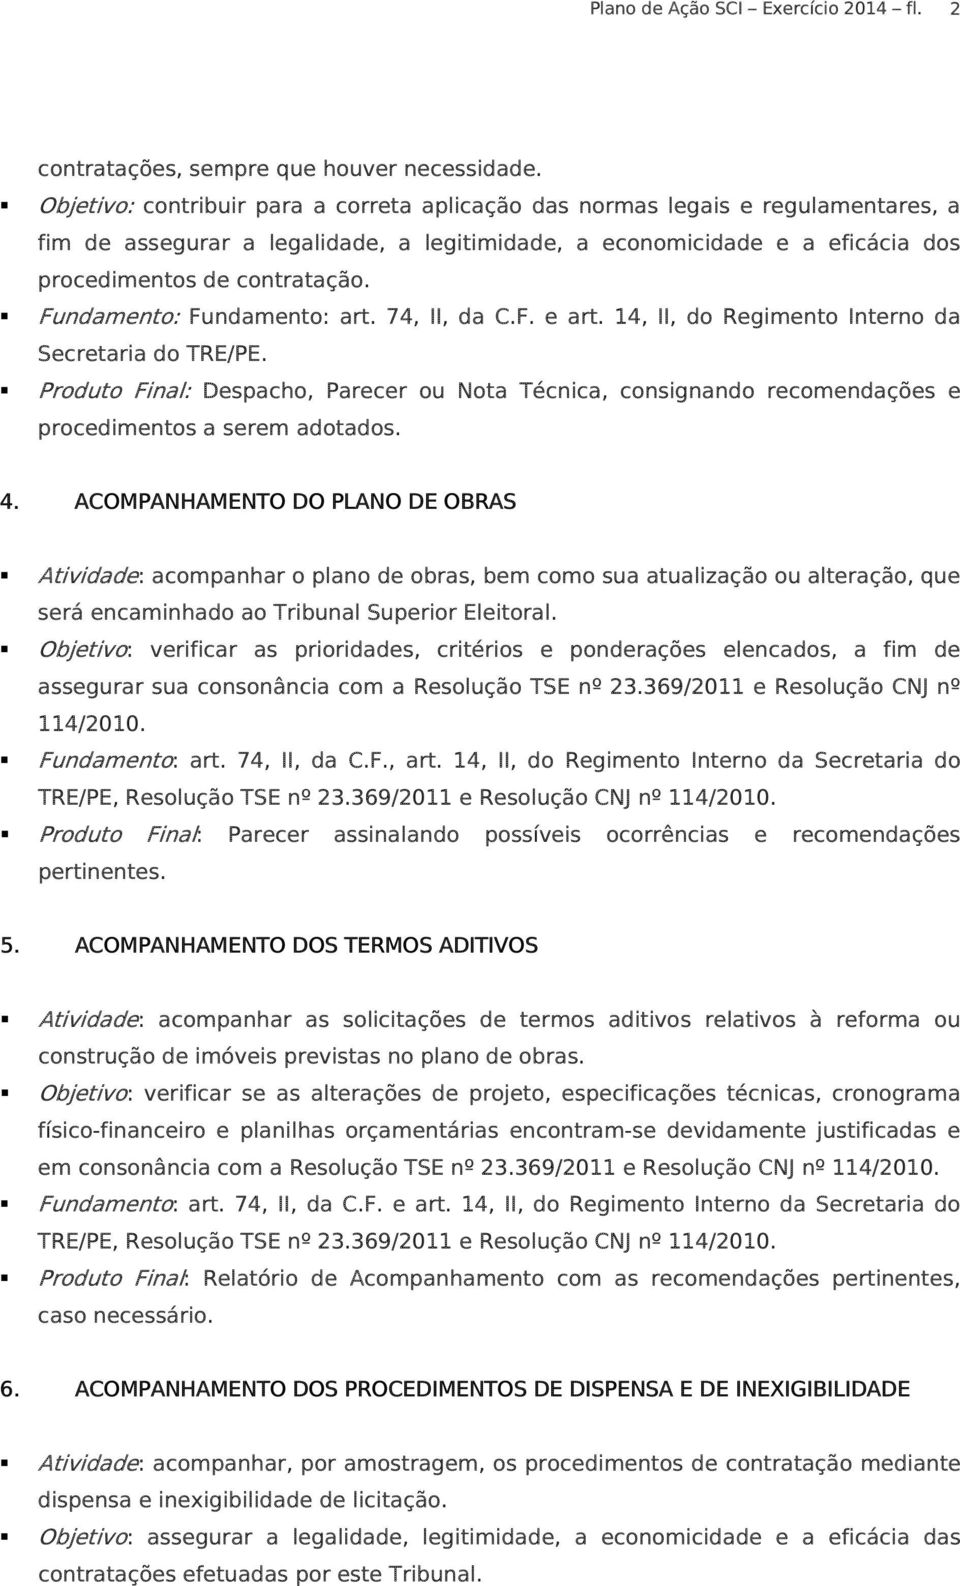 Fundamento: Fundamento: art. 74, II, da C.F. e art. 14, II, do Regimento Interno da Secretaria do TRE/PE.